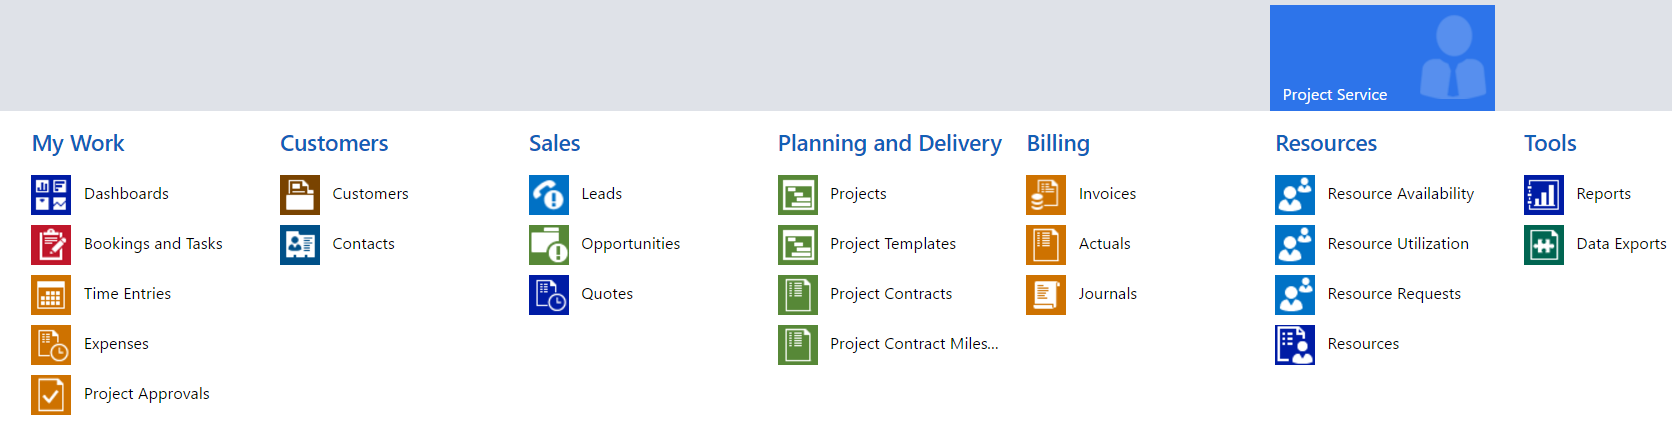 Microsoft-Dynamics-Project-Service.png